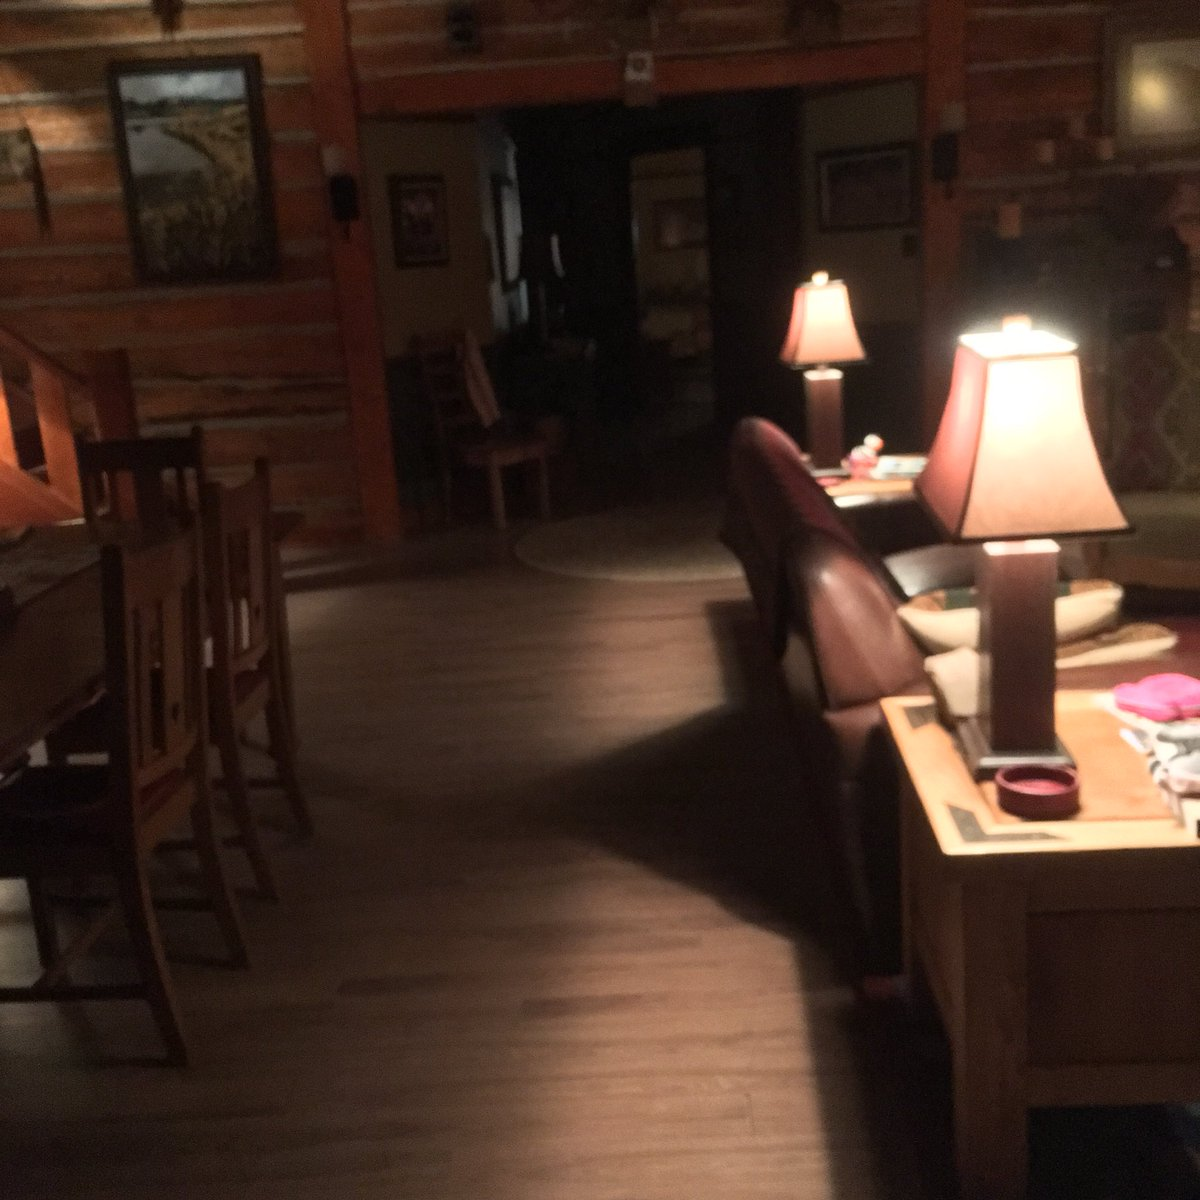 Heartland On Twitter While Filming Is